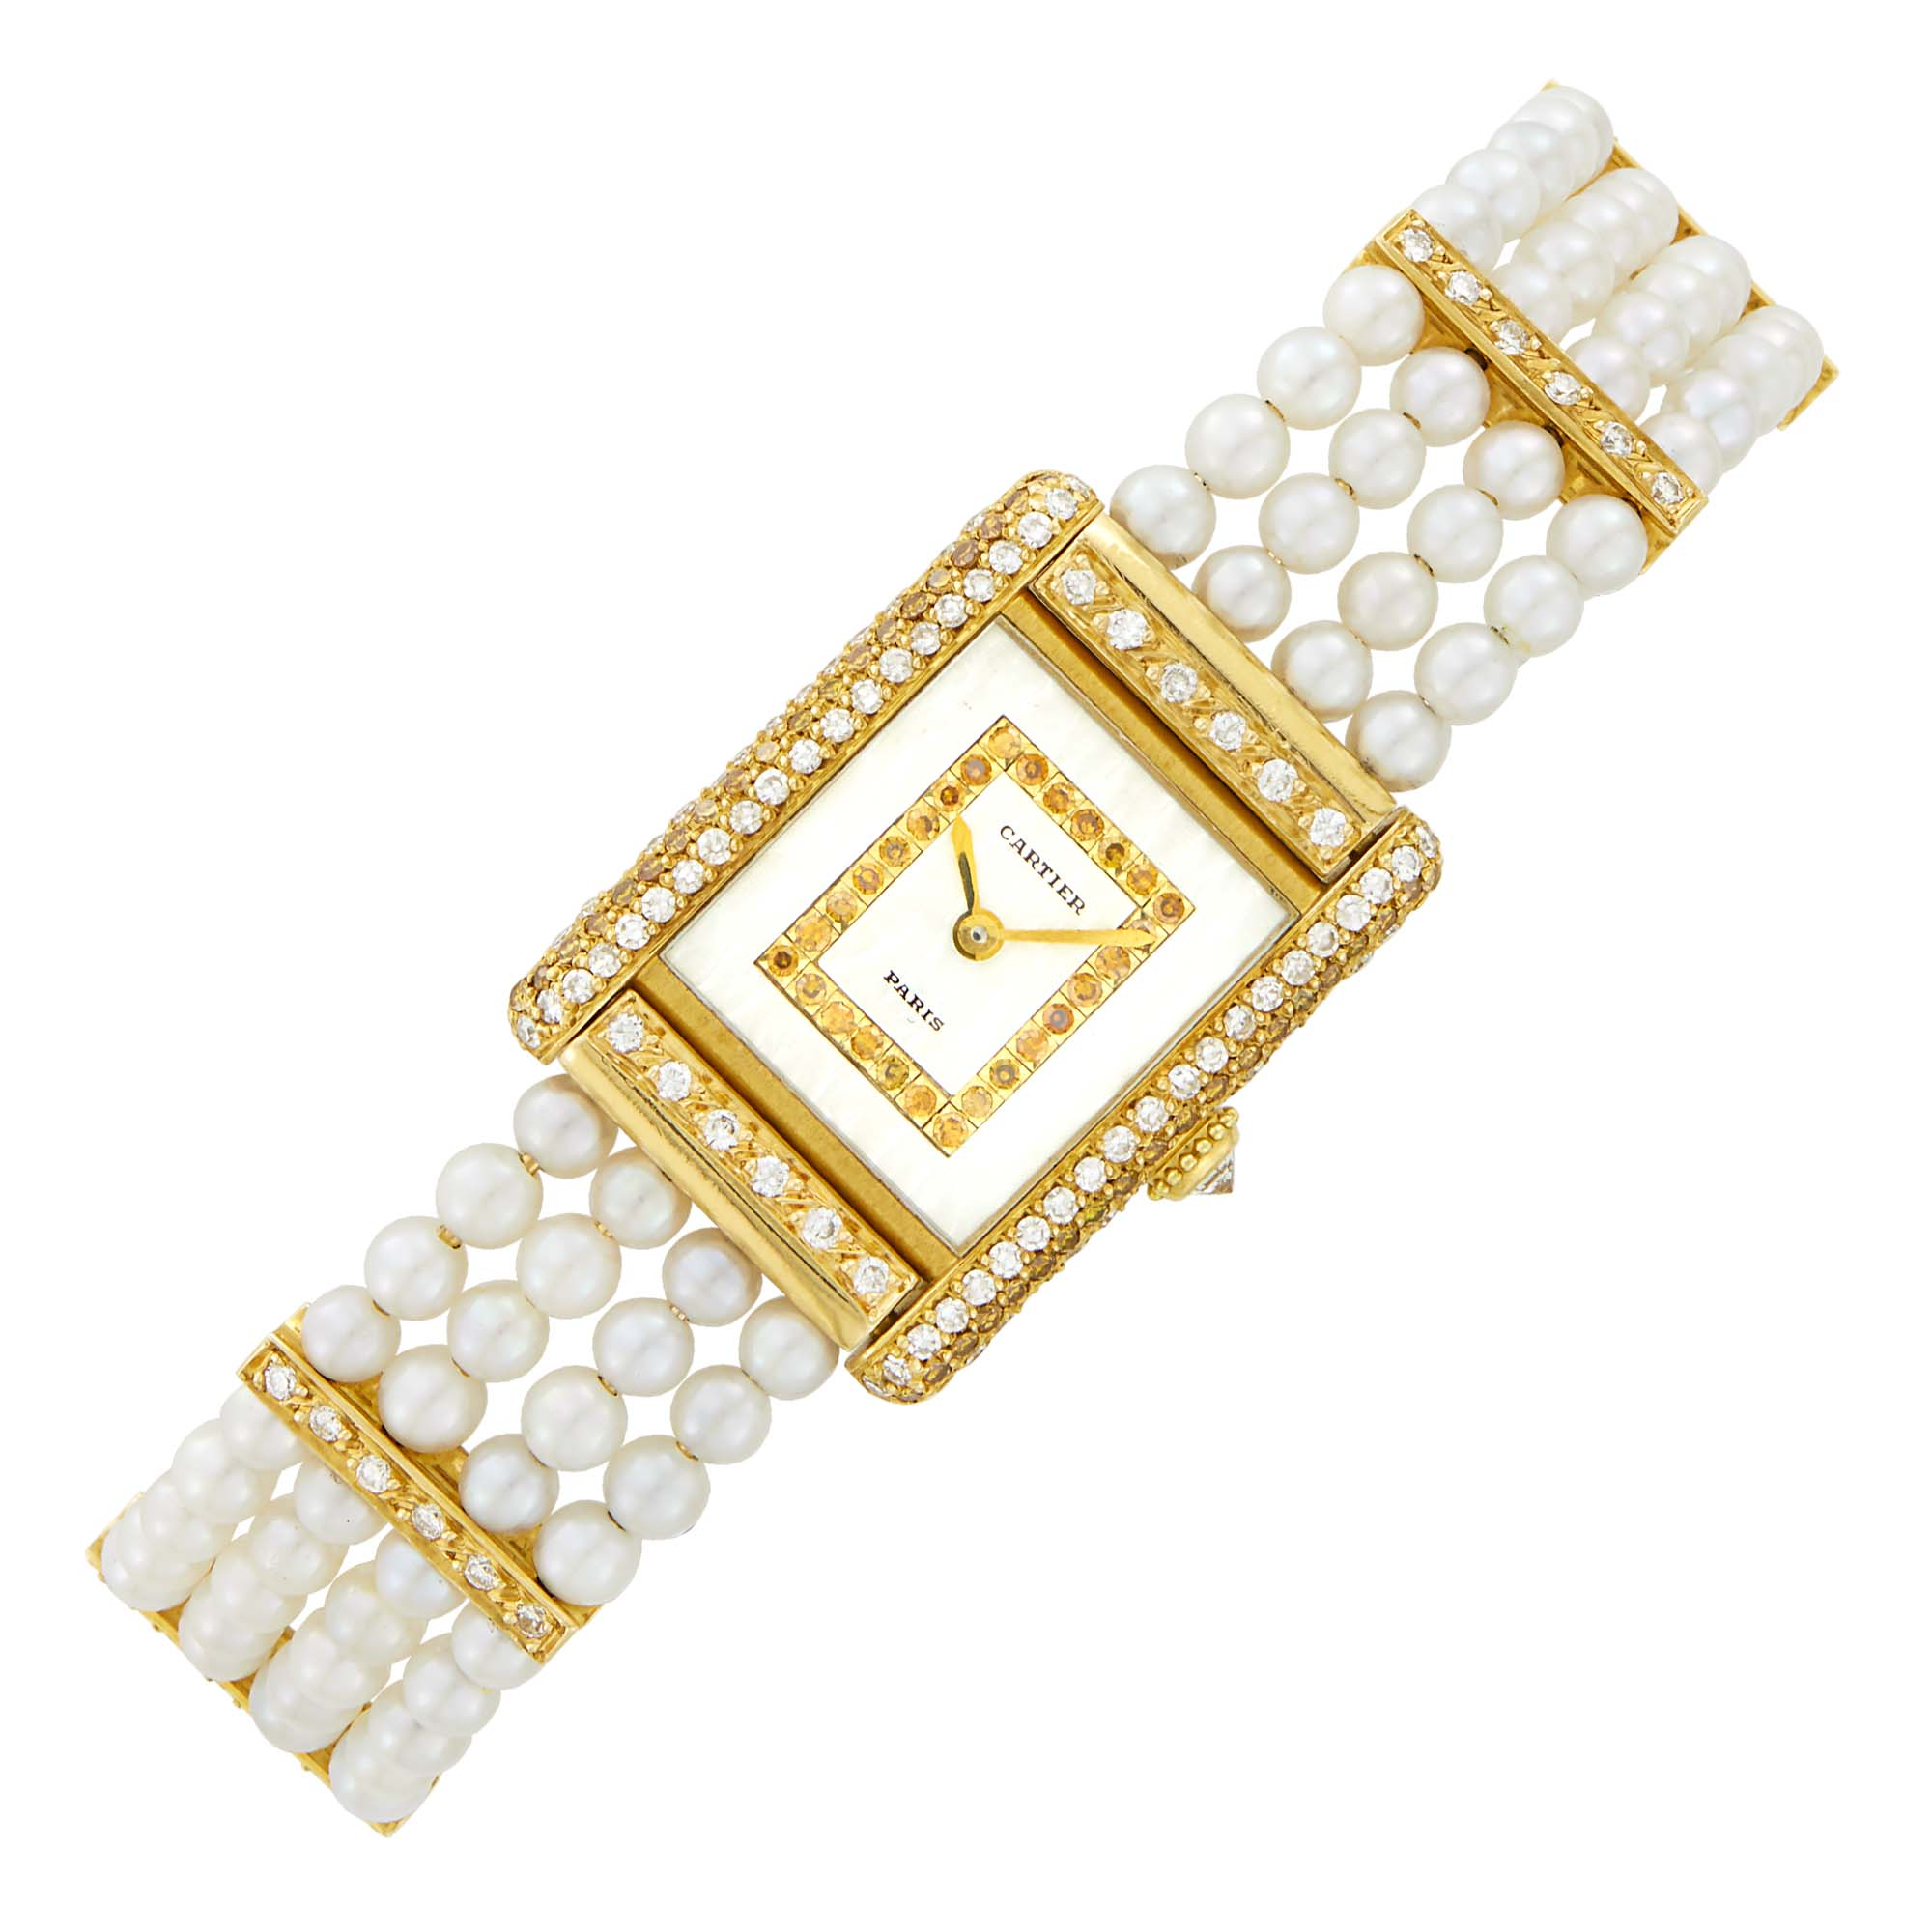 Lot image - Cartier Paris Gold, Mother-of-Pearl, Cultured Pearl, Colored Diamond and Diamond Wristwatch, Ref. 0132